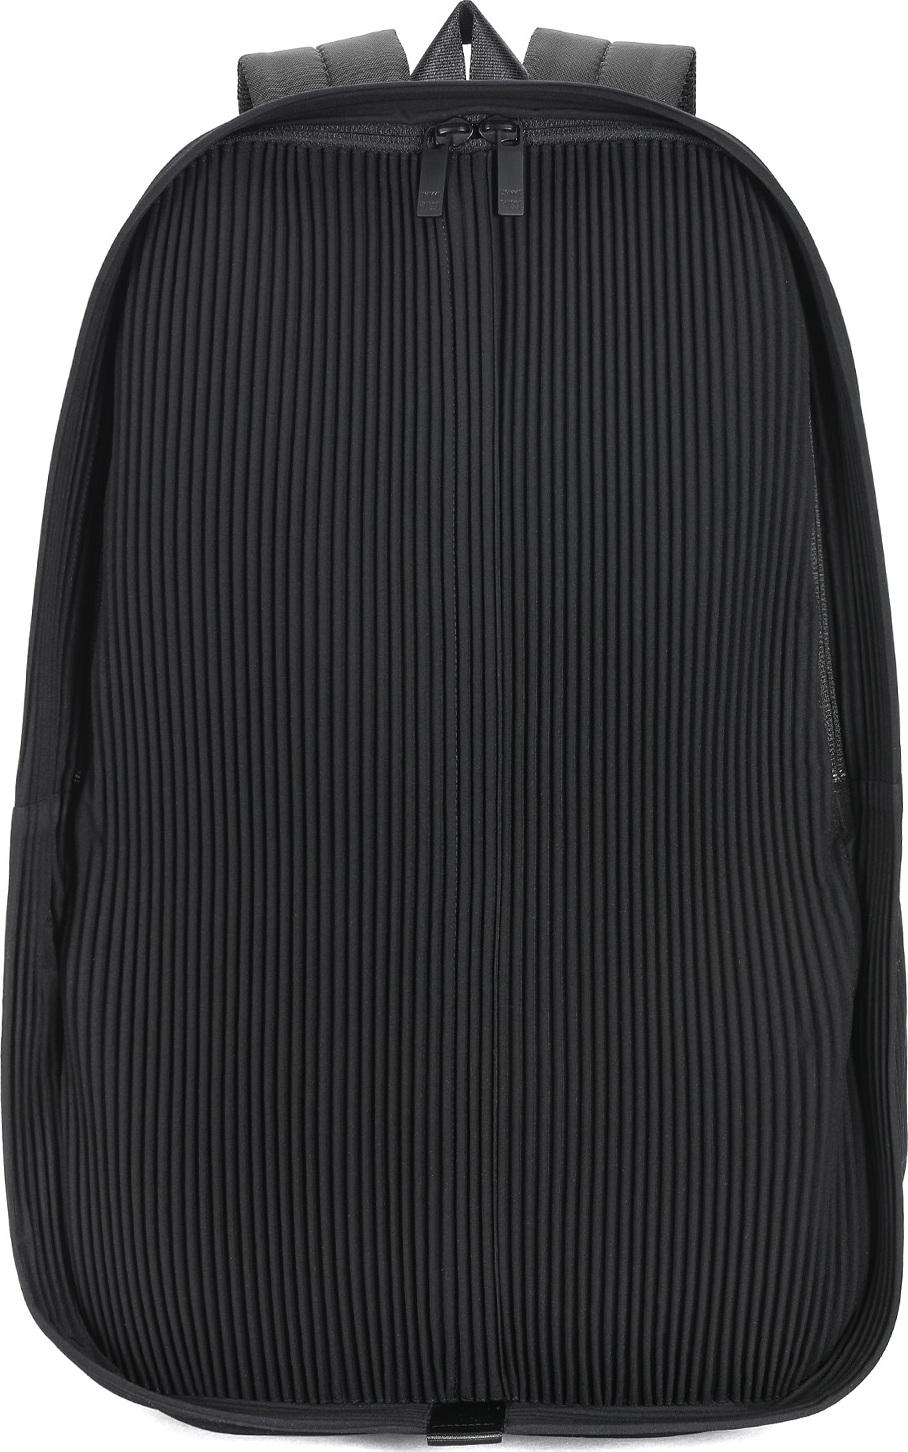 ribbed backpack - Black Homme Plissé Issey Miyake Cheap Sale Genuine Professional Cheap Online Largest Supplier For Sale Buy Cheap Sale Sale View eZpaI1